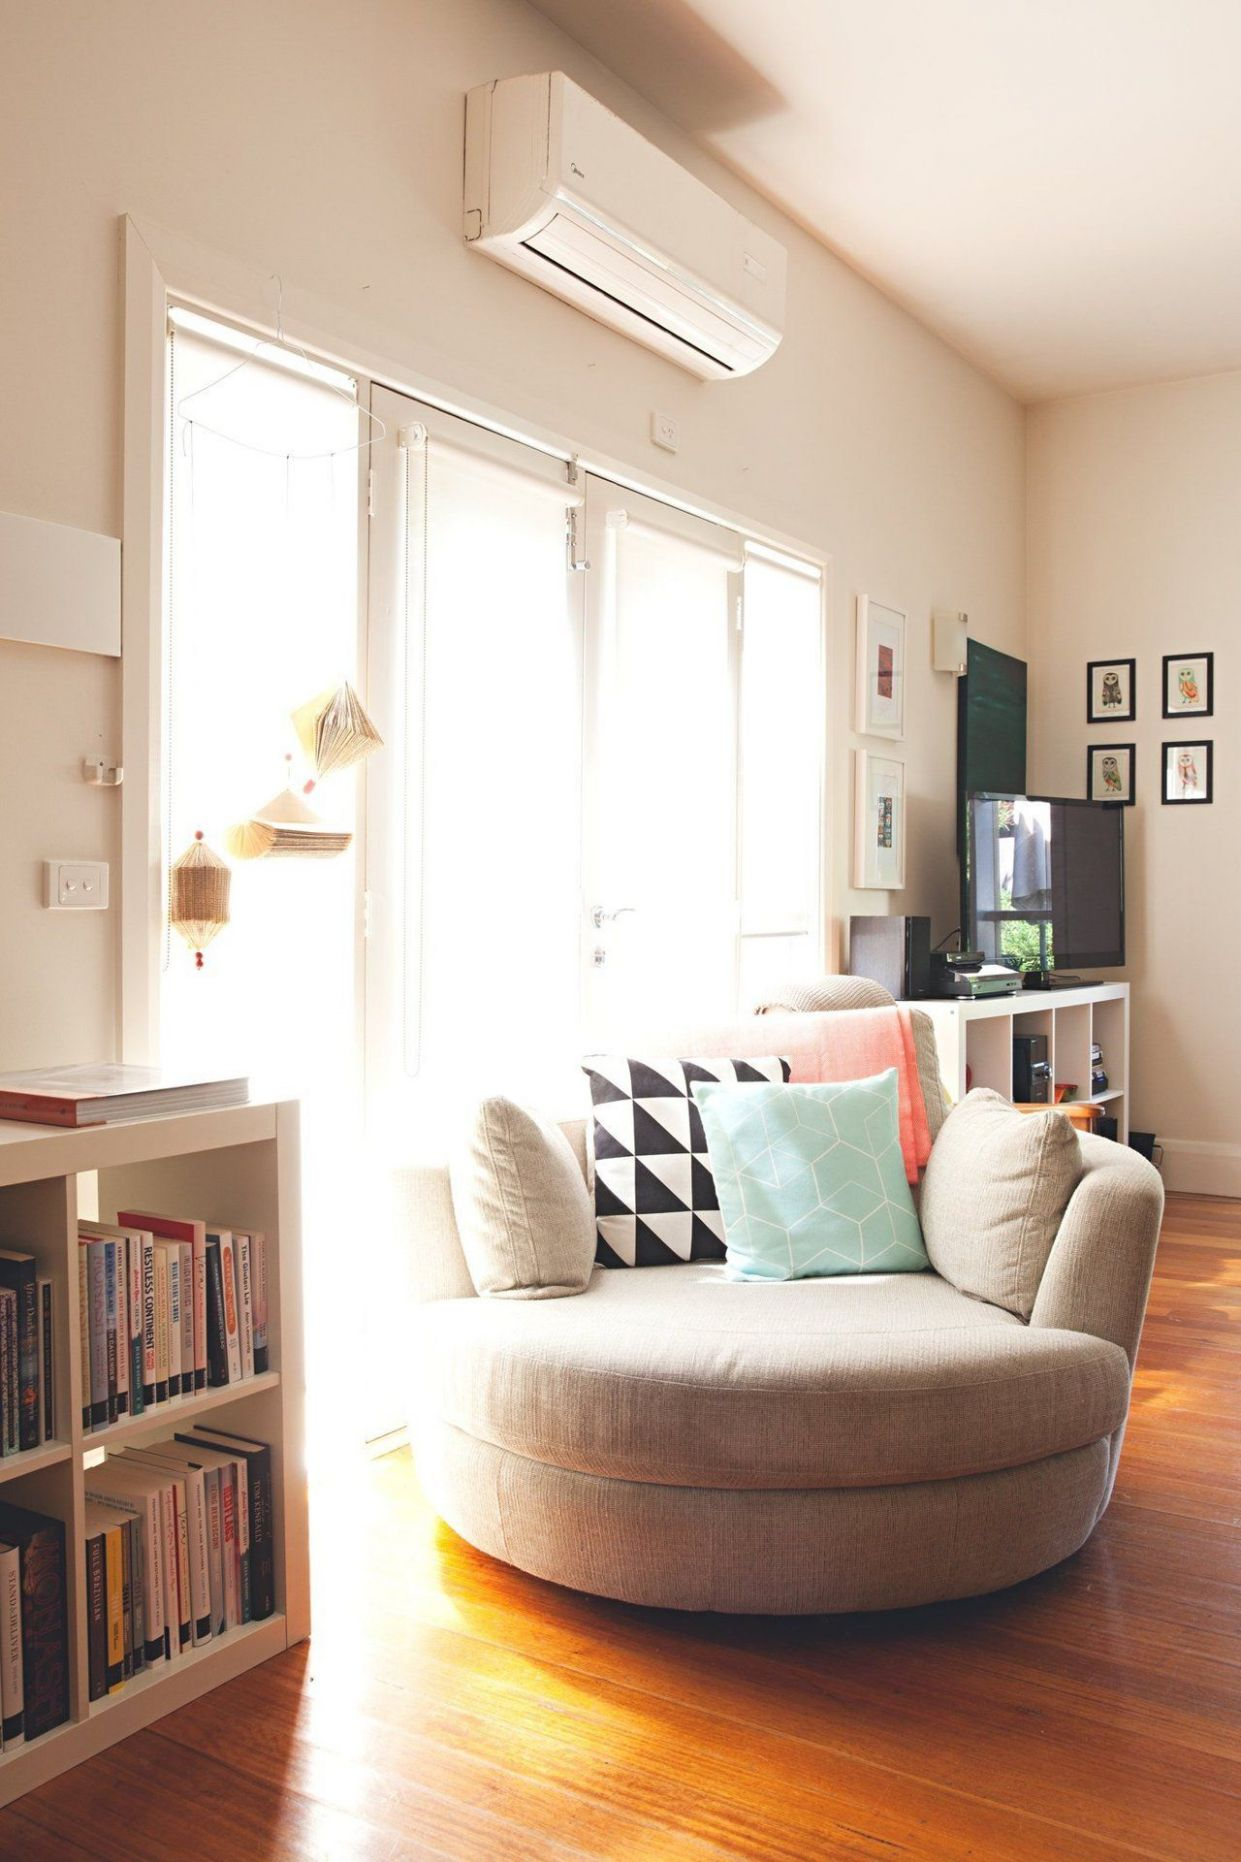 A Happy, Colorful Home in Australia (With images) | Apartment ..